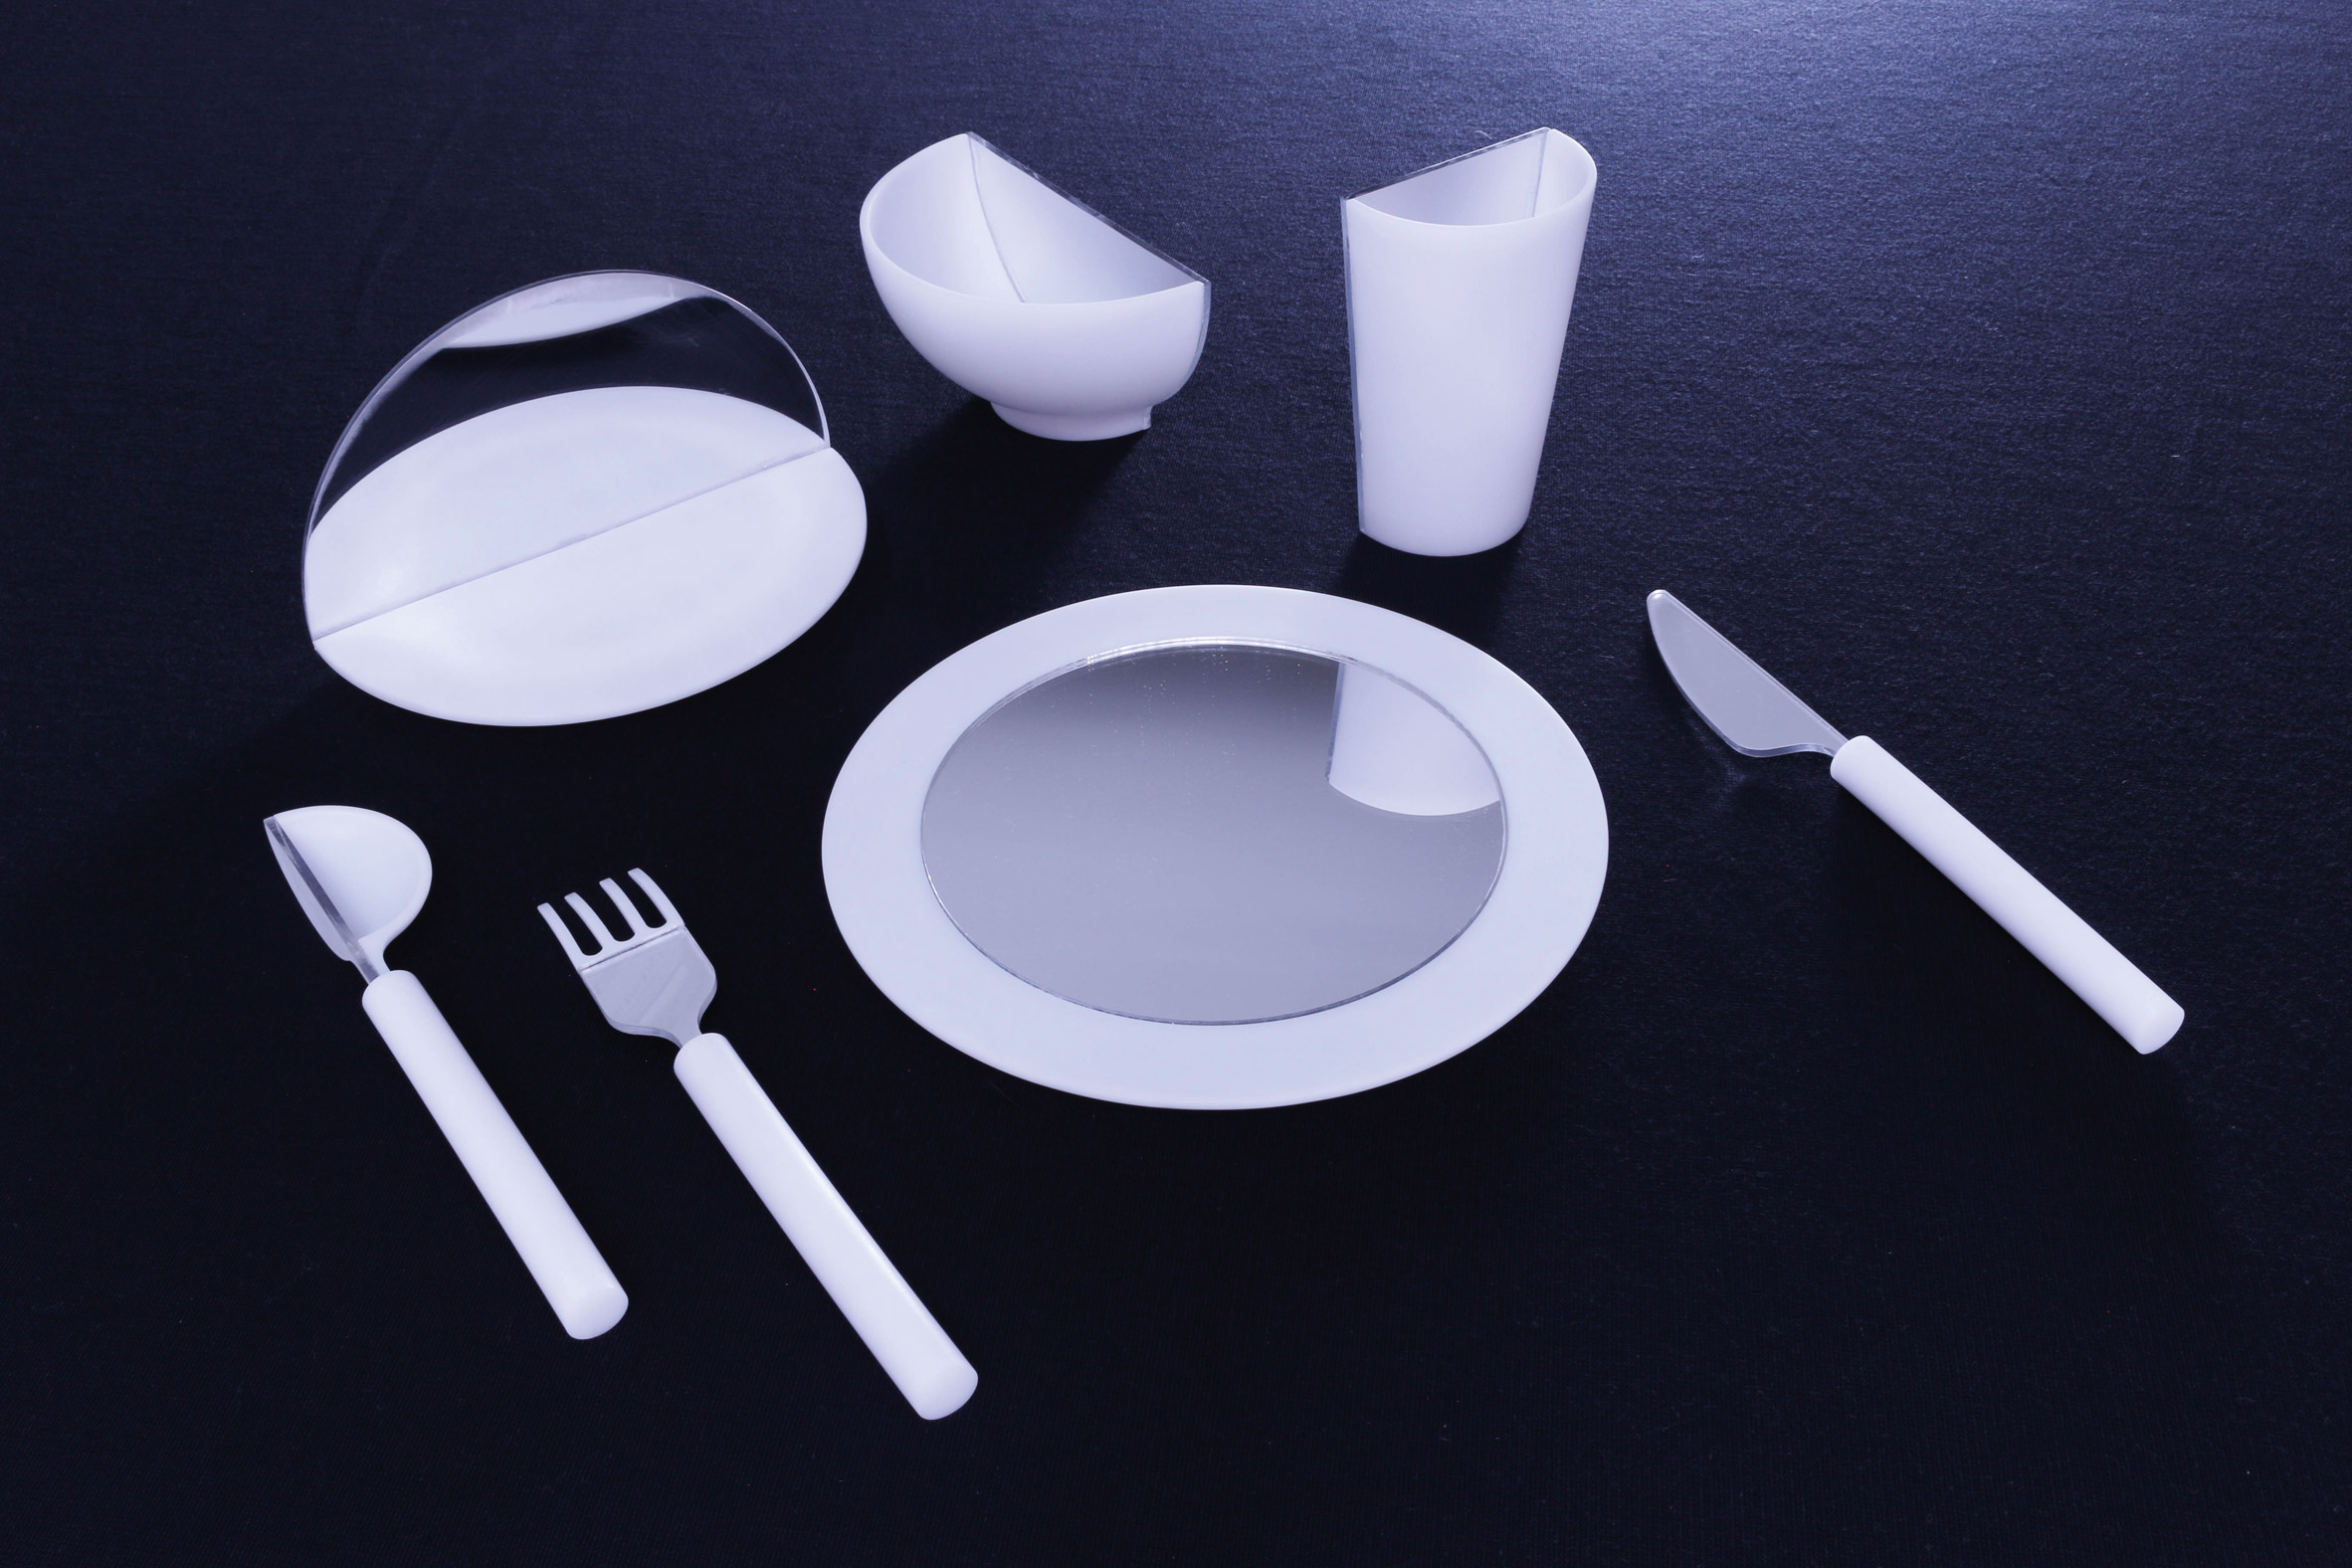 Mirrored tableware tricks diners into thinking they're full